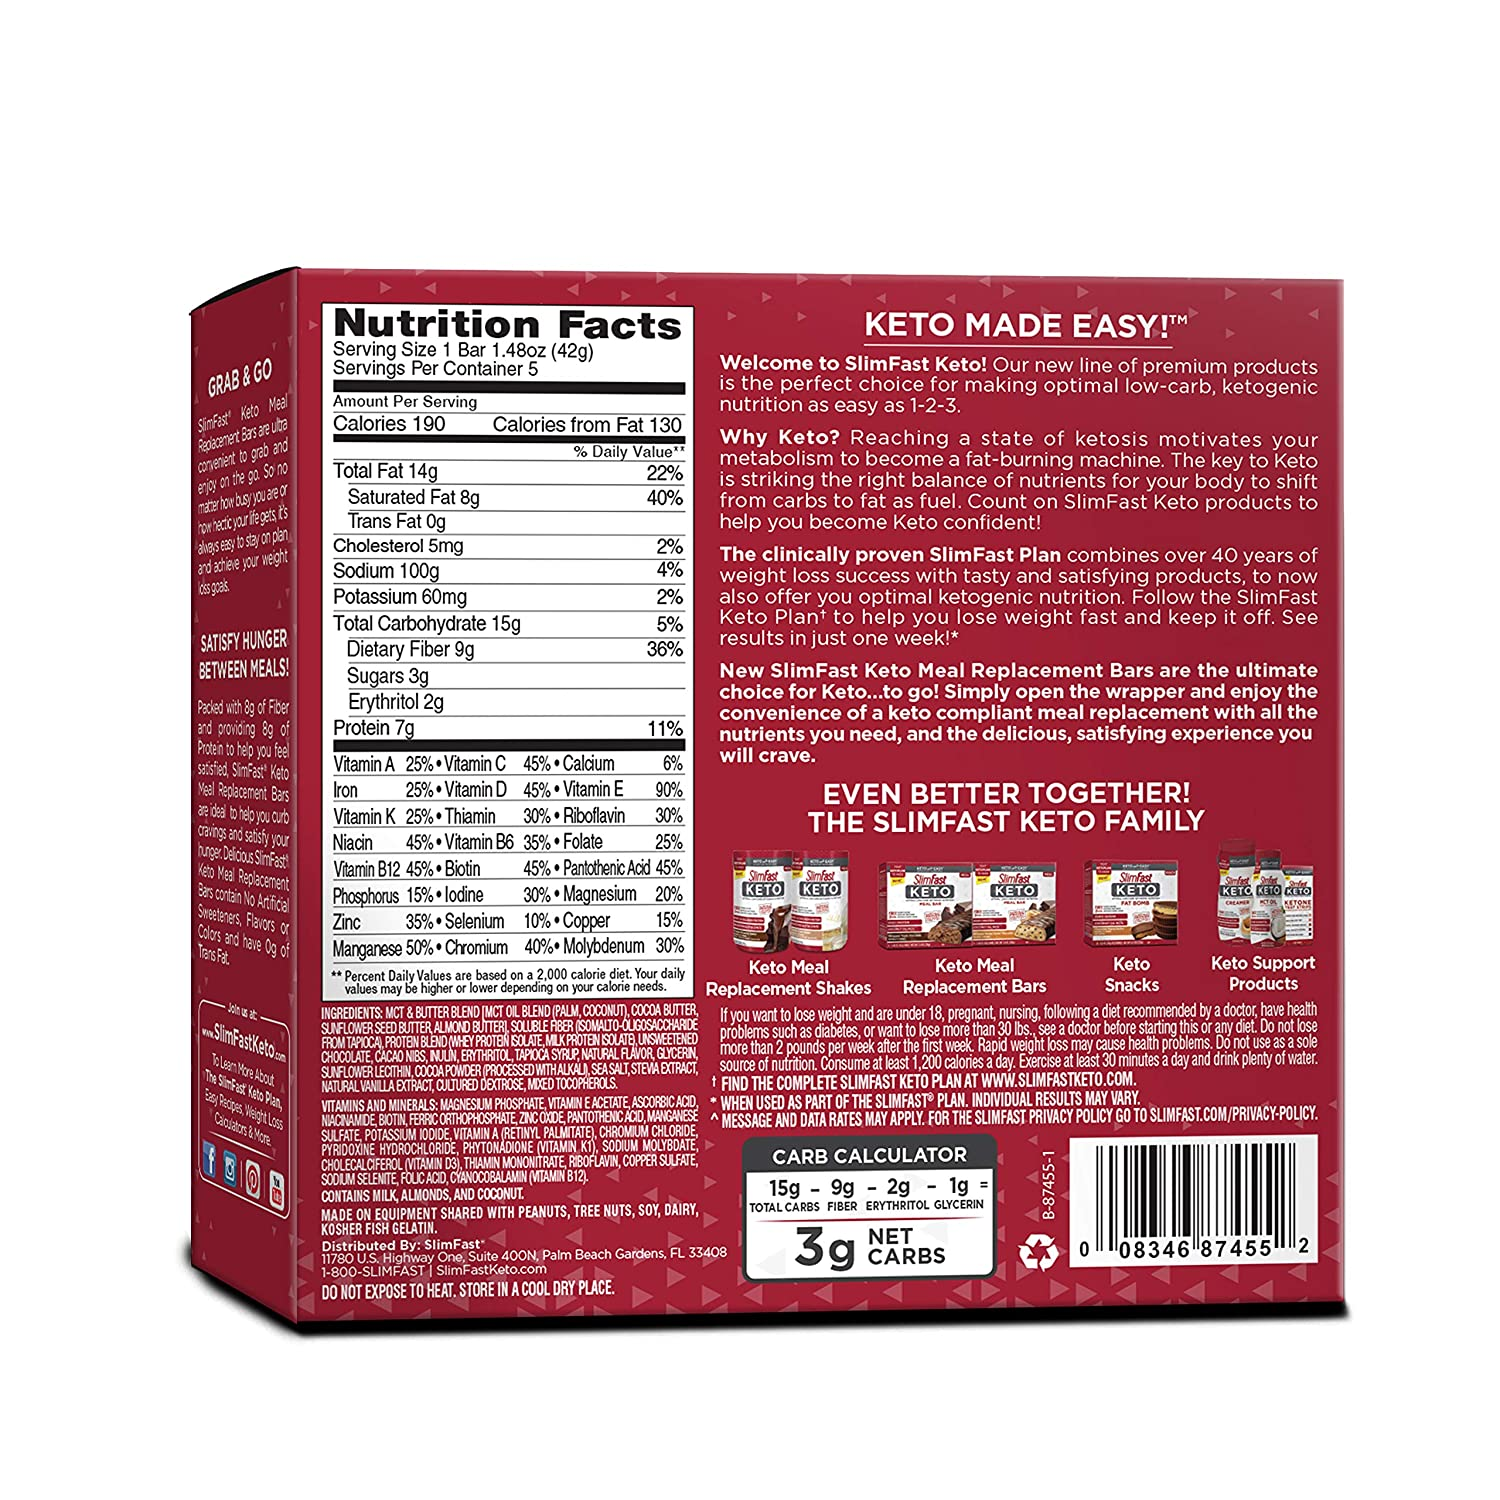 SlimFast 4 Piece Keto Meal Replacement Bar Triple Chocolate, 2.7 Pound